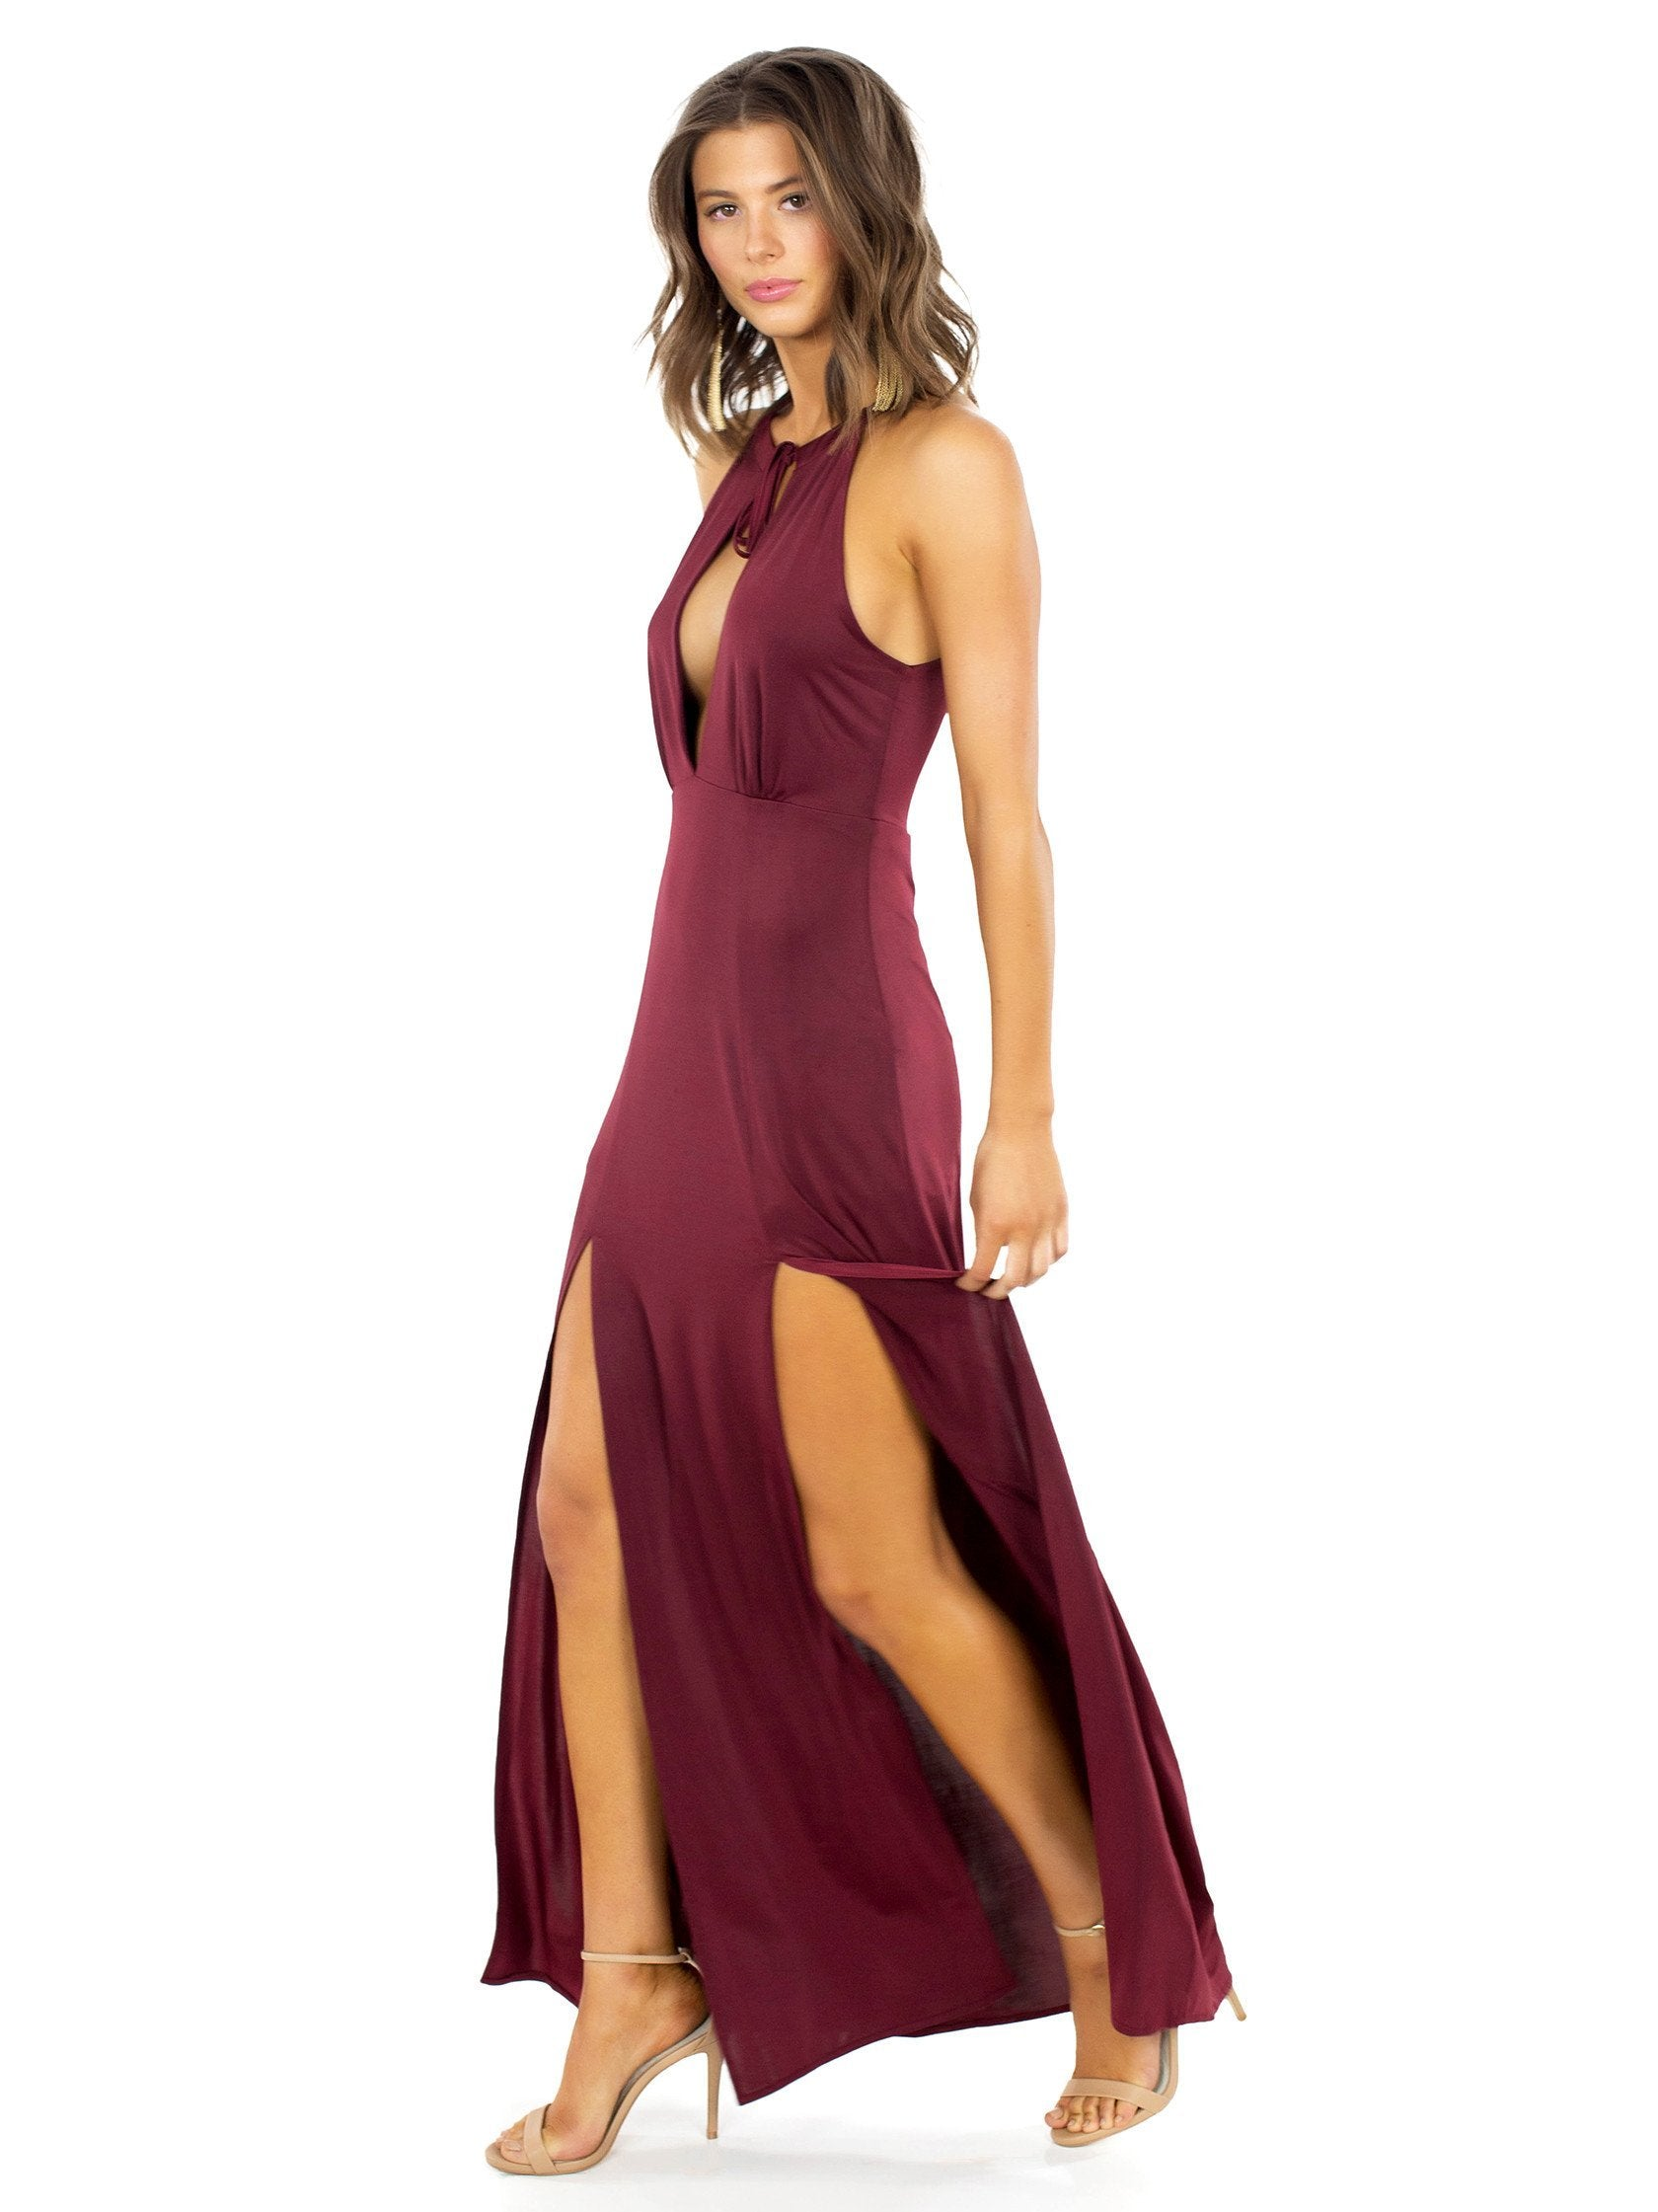 Woman wearing a dress rental from WYLDR called Out Of My League Maxi Dress